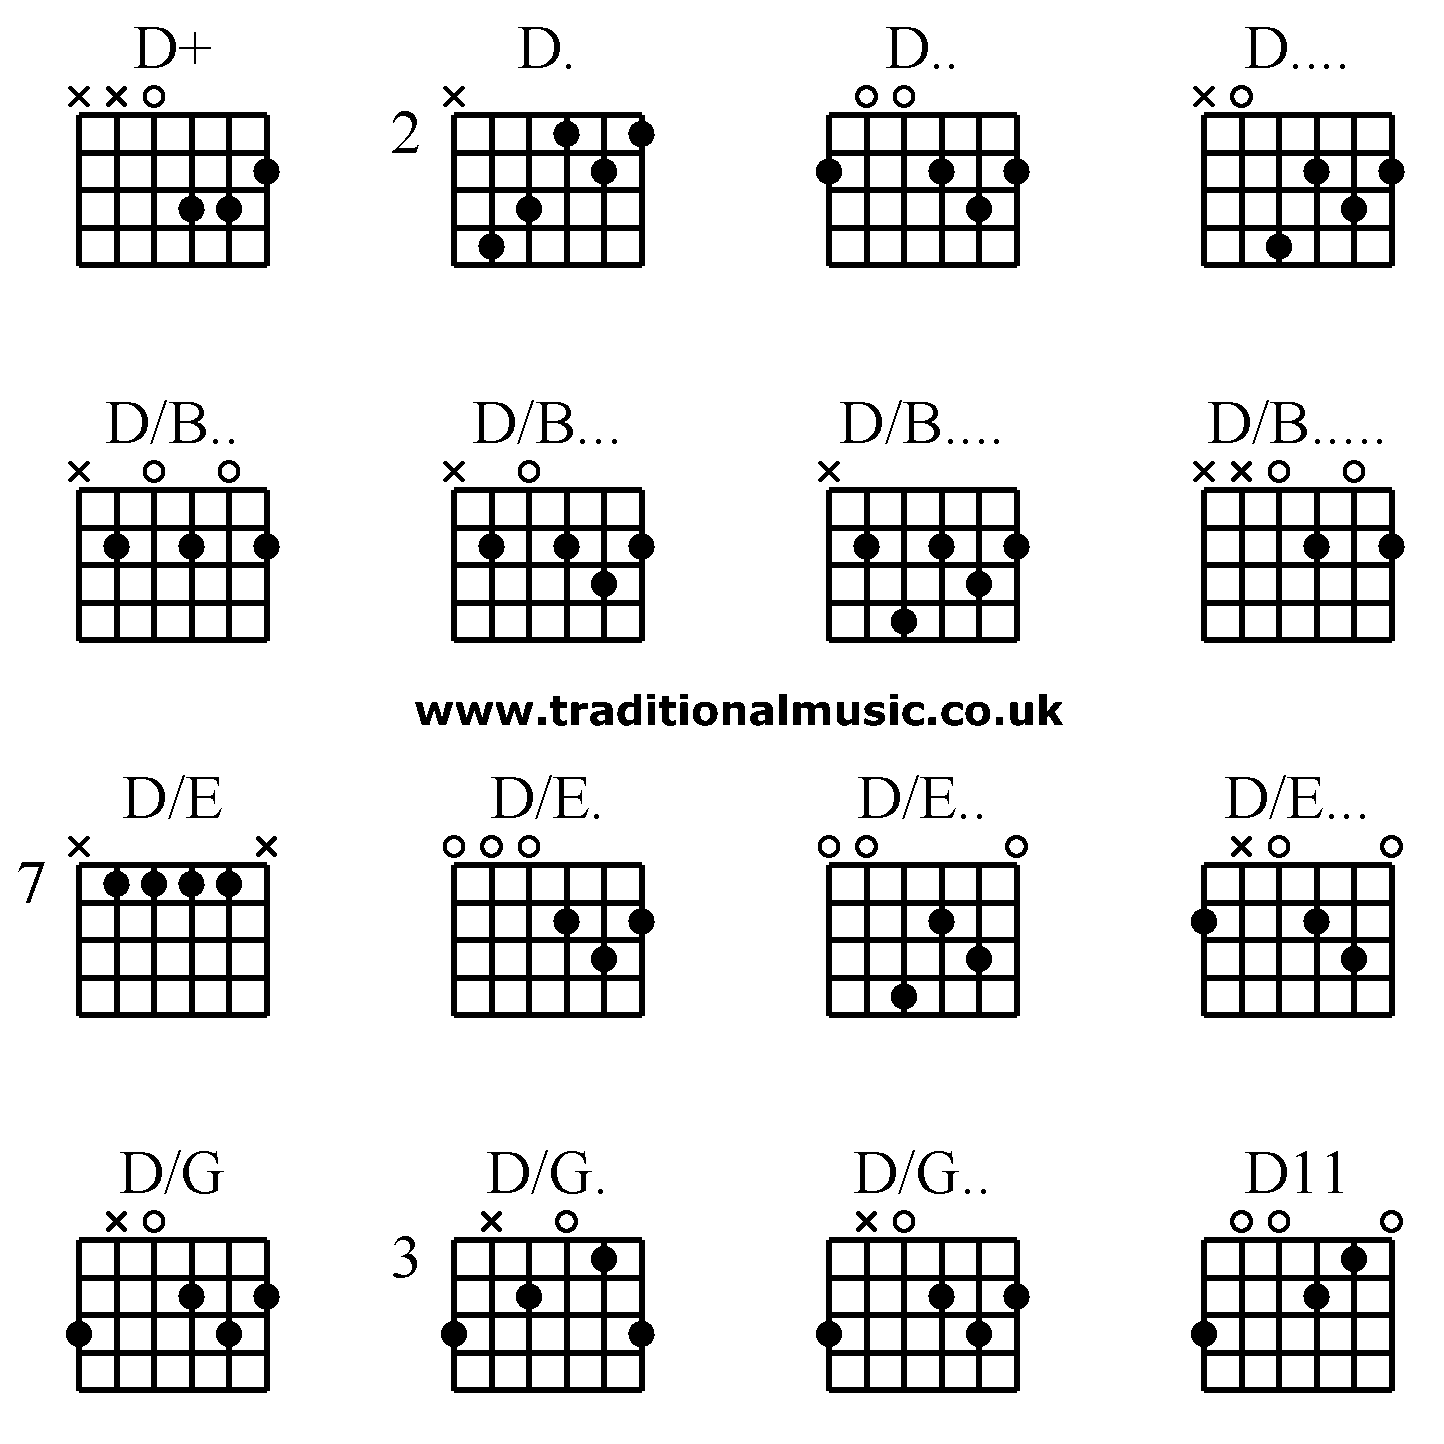 Guitar Chords Advanced D D D D Db Db Db Db De De D